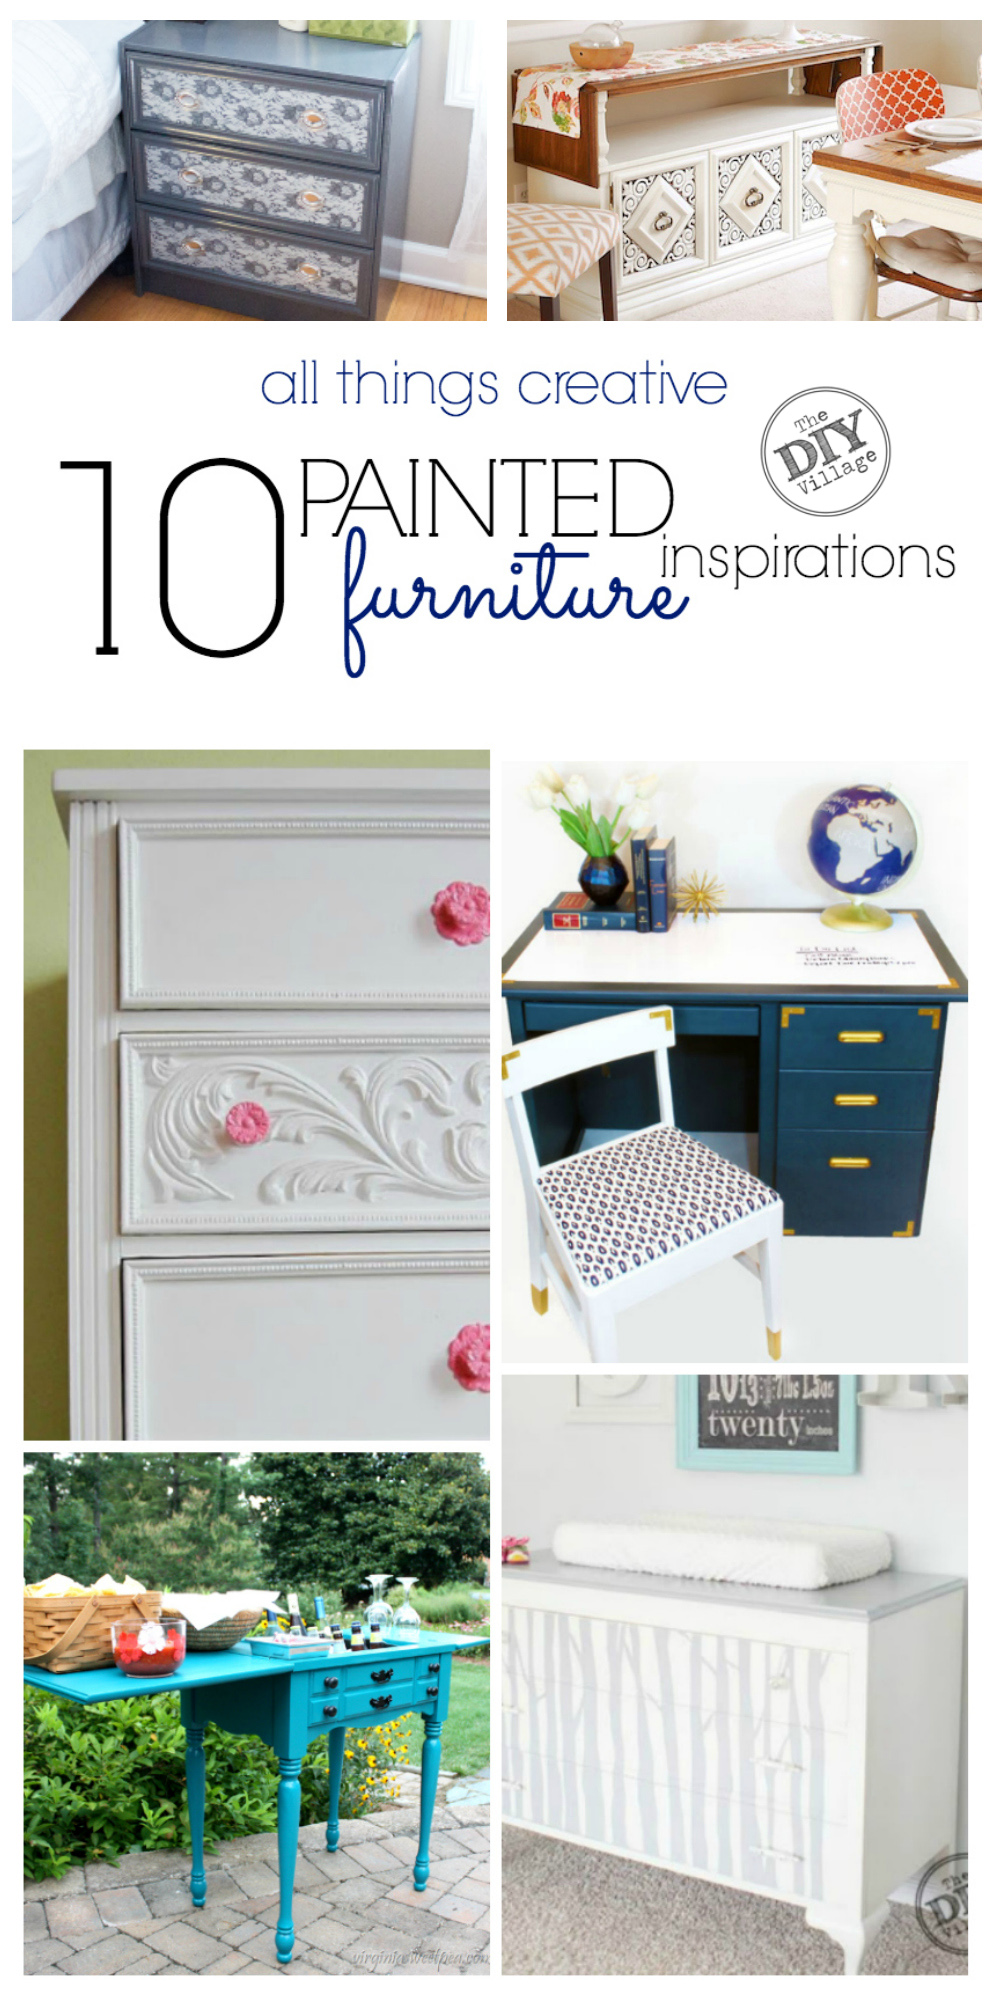 10 awesome painted furniture inspirations, including painting upholstery.